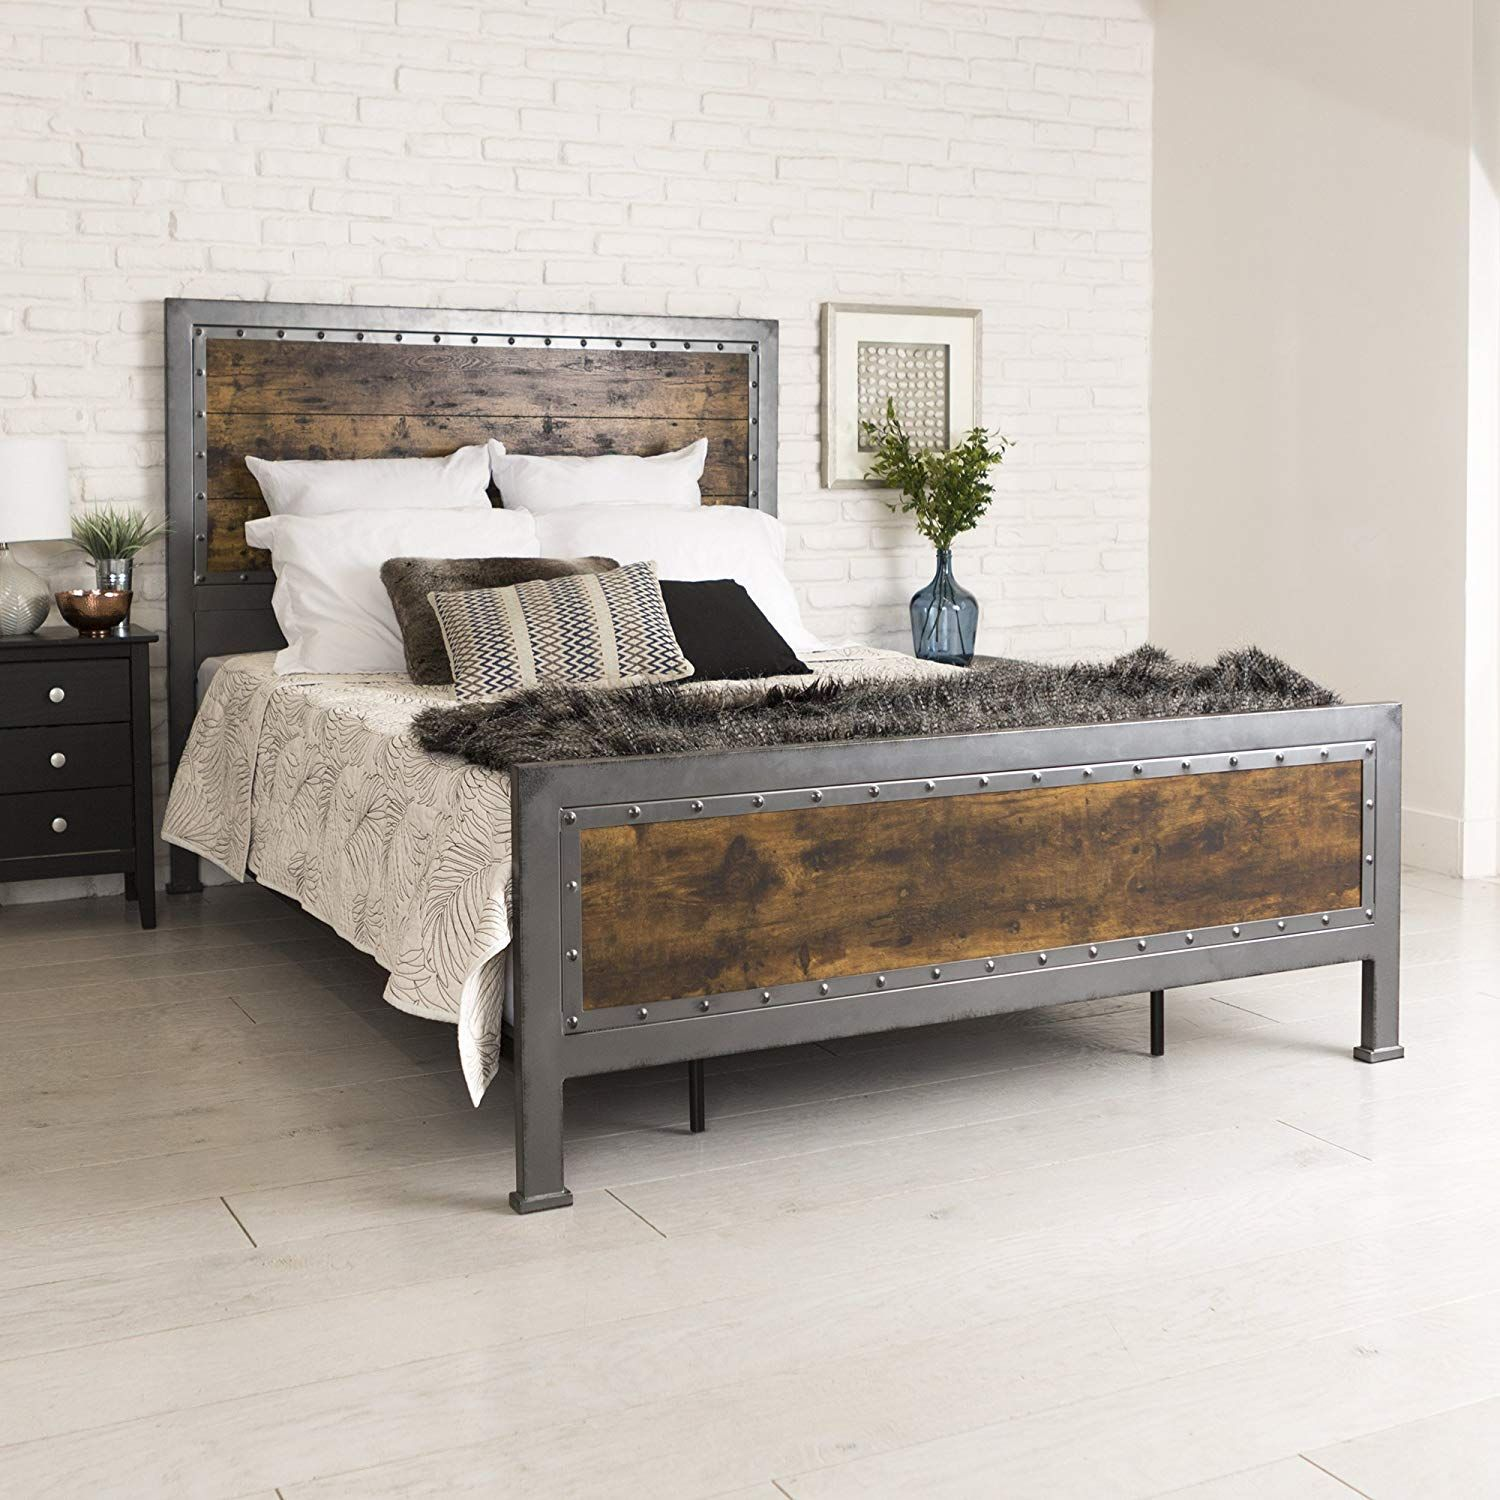 Made Of Refined Metal With A Powder Coated Finish And Engineered Wood In A Rustic Industrial Design Furniture Cheap Bedroom Makeover Rustic Wood Bed